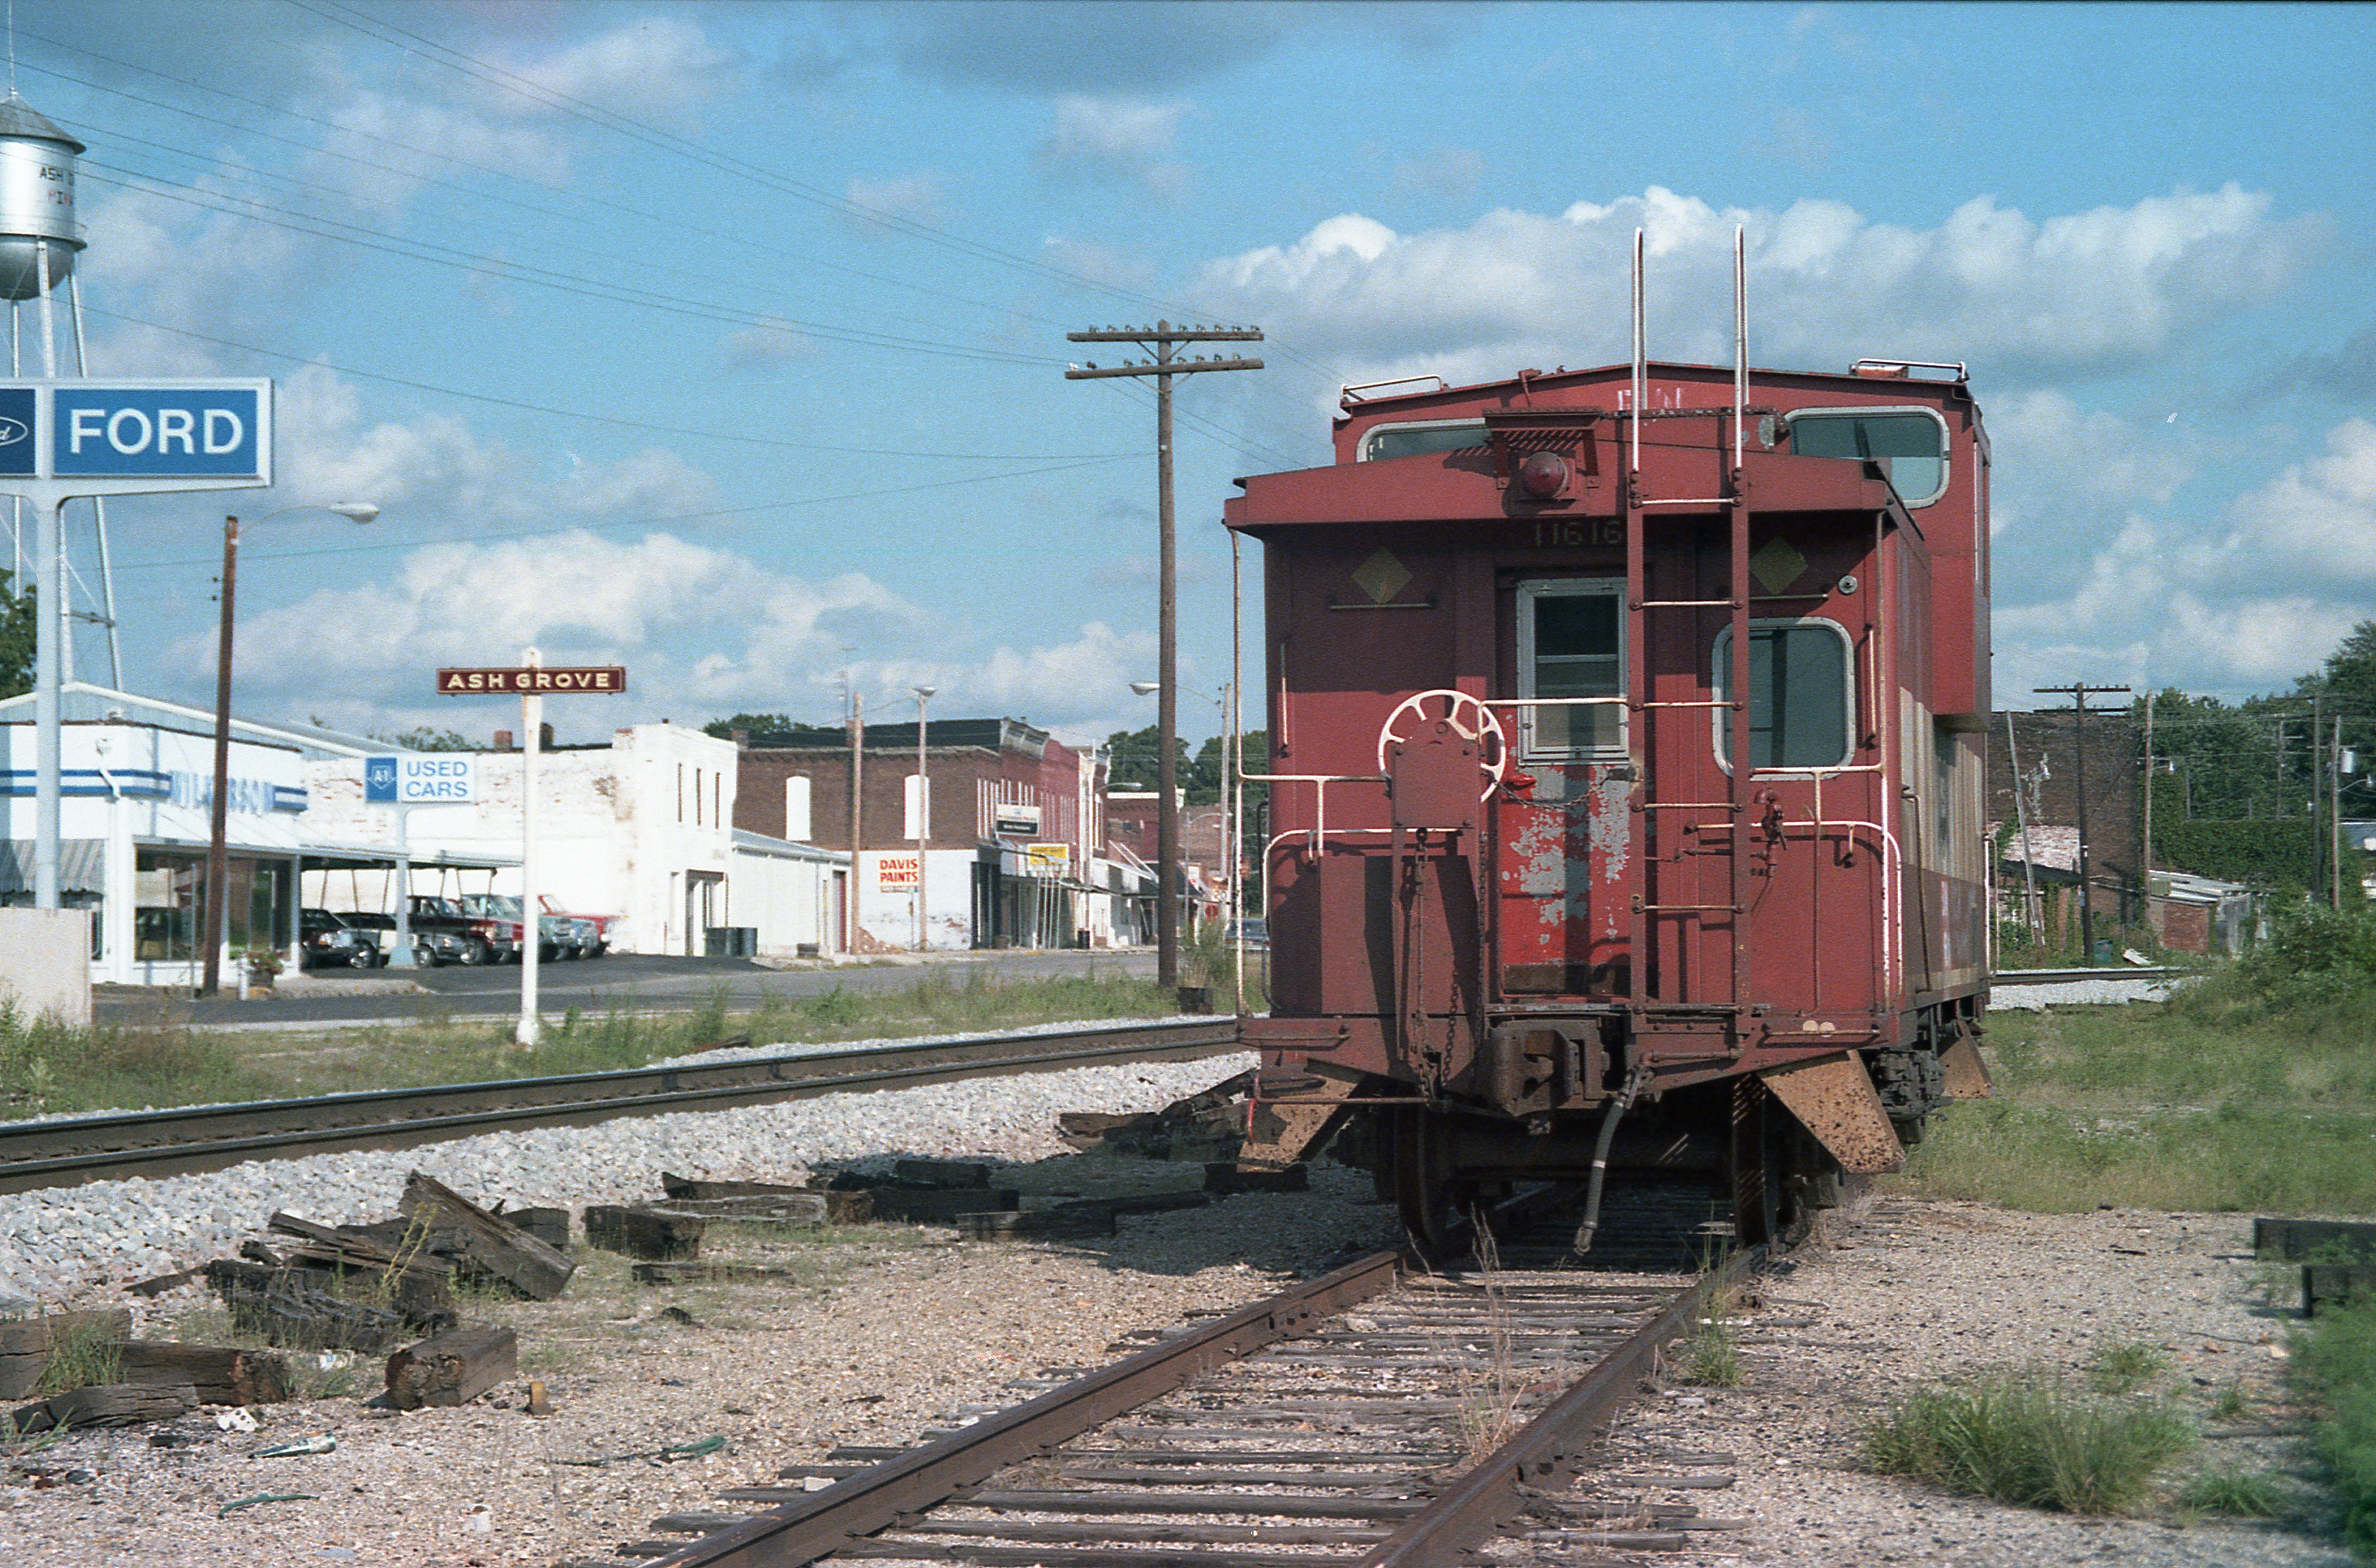 Caboose 11616 (Frisco 1288) at Ash Grove, Missouri on August 10, 1986 (R.R. Taylor)